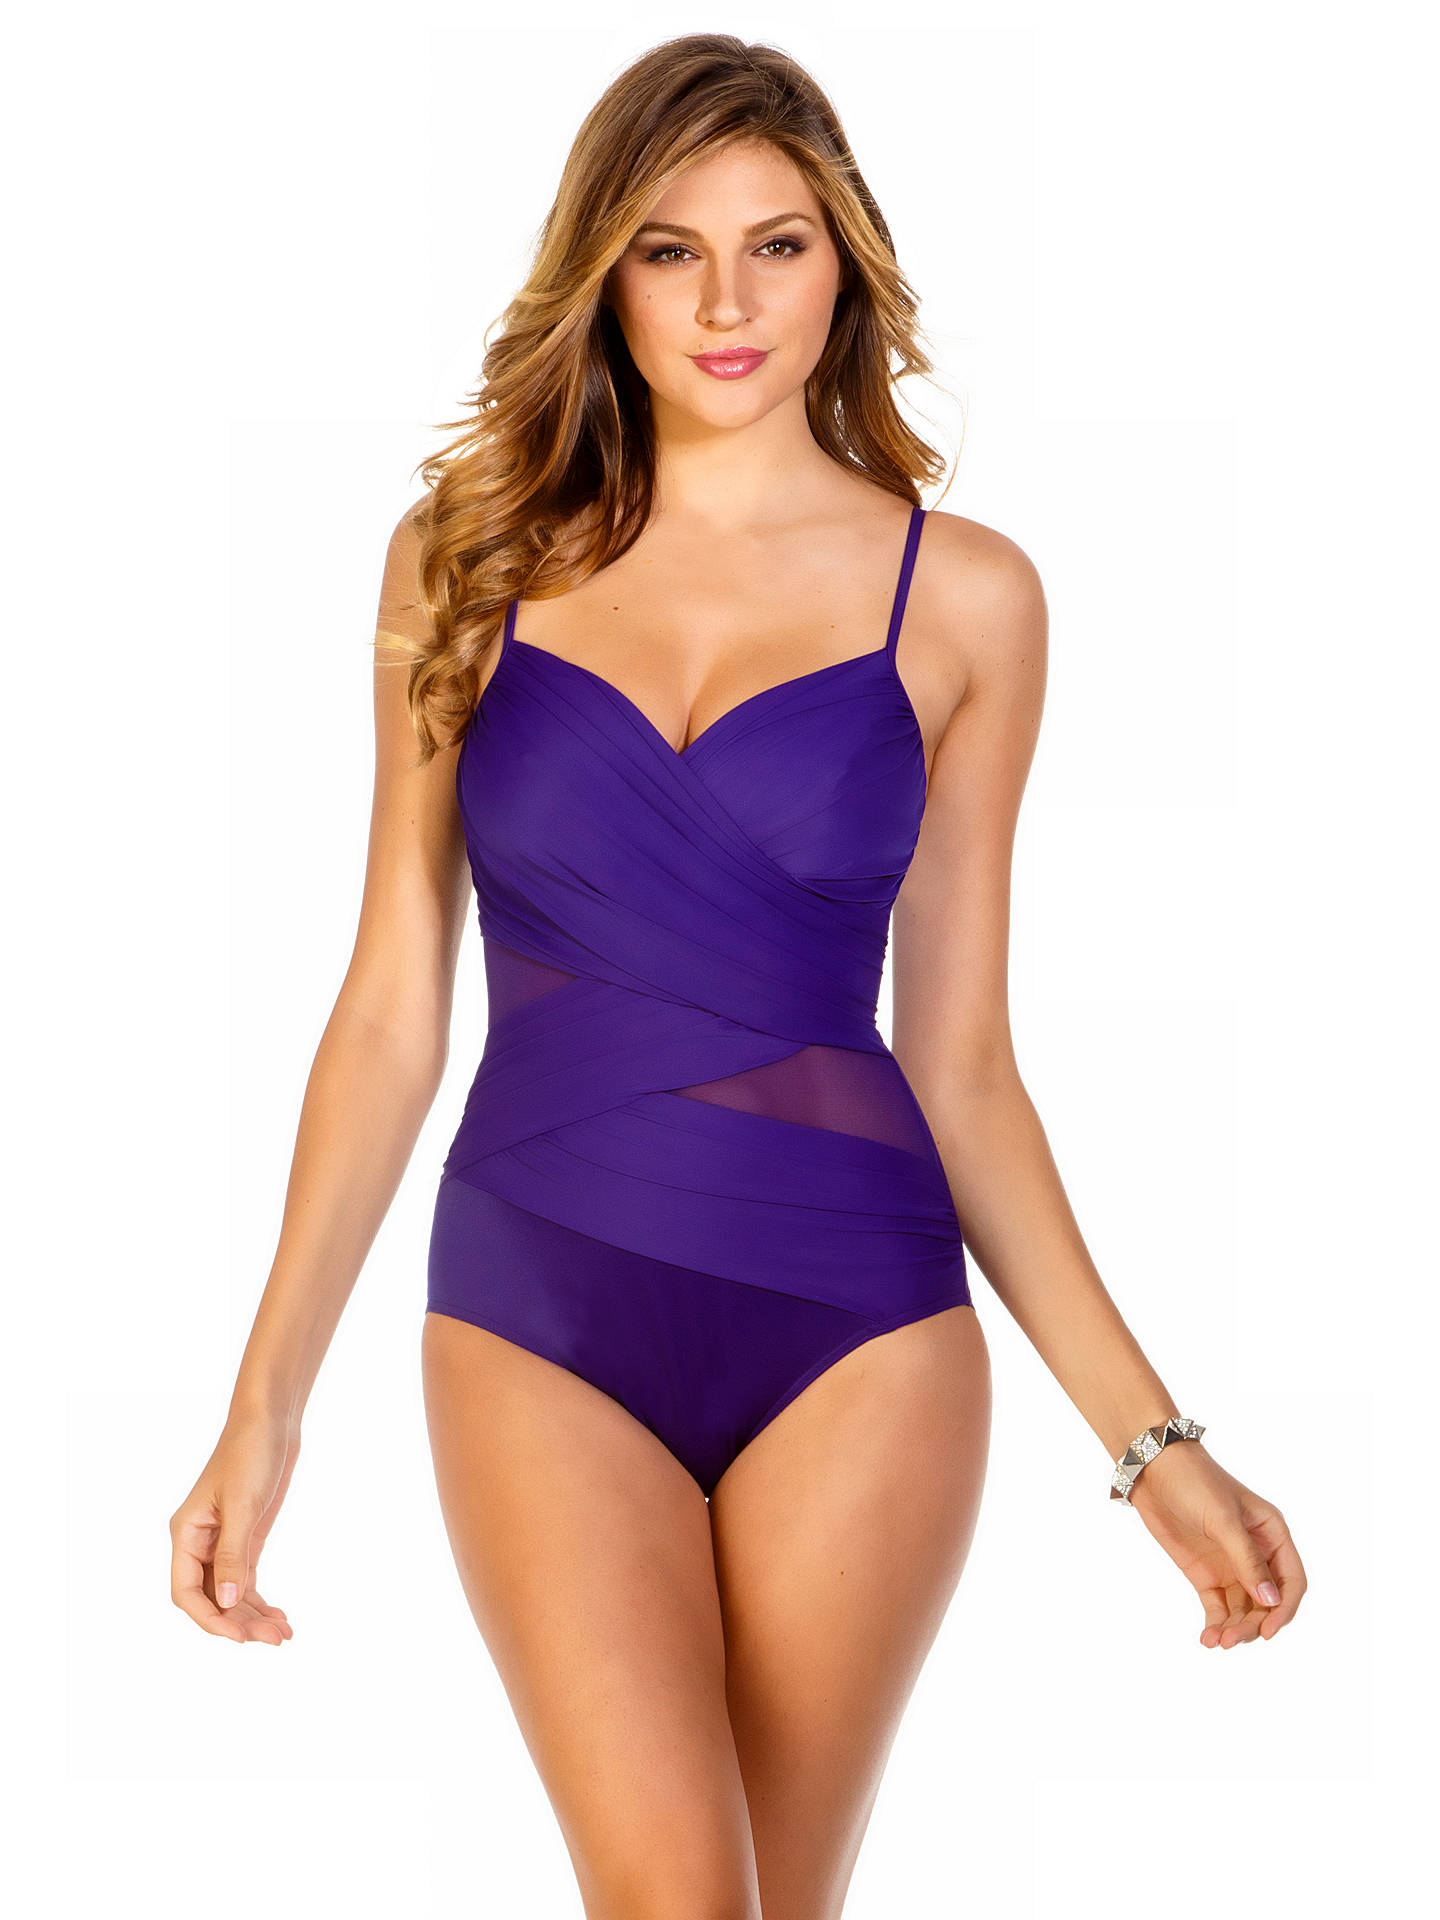 35adb6215df Miraclesuit Mystify Underwired Shaping Swimsuit, Purple at John ...